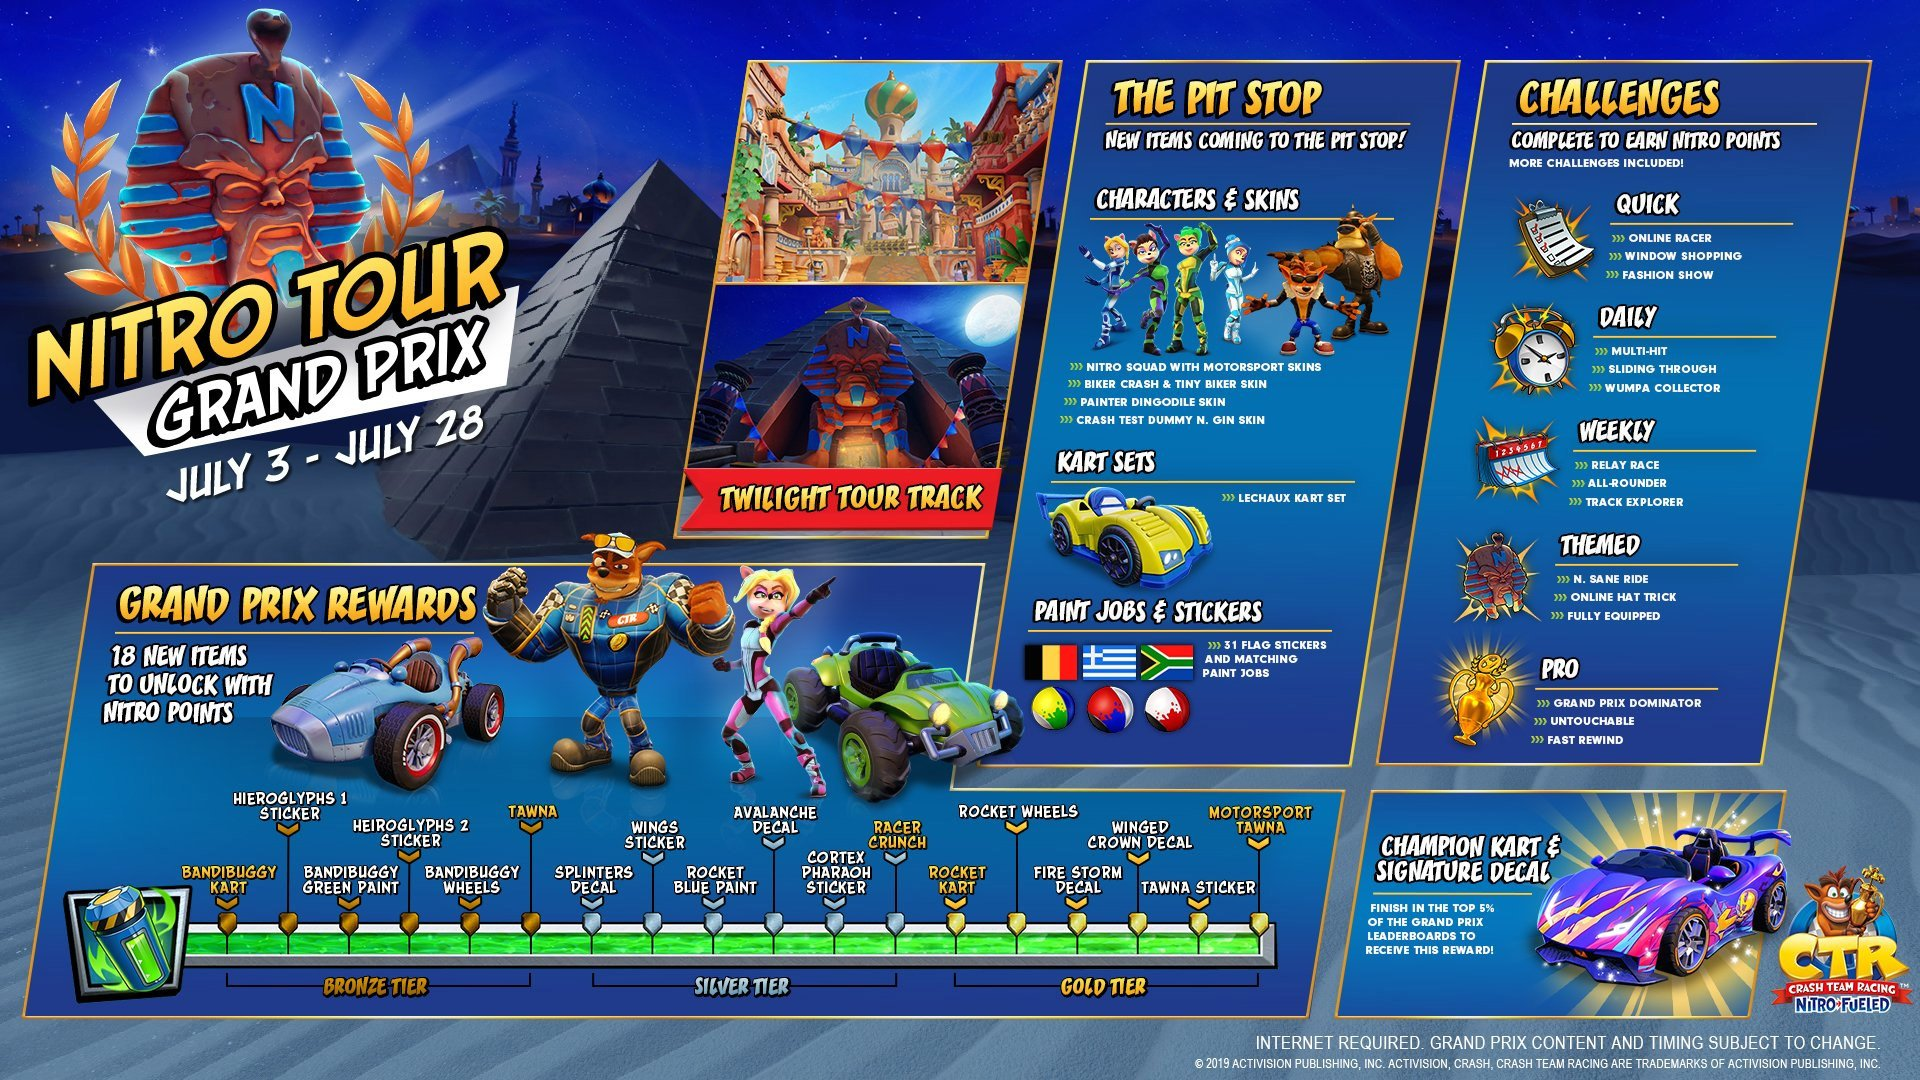 The Full Crash Team Racing Nitro Tour Grand Prix rewards roadmap